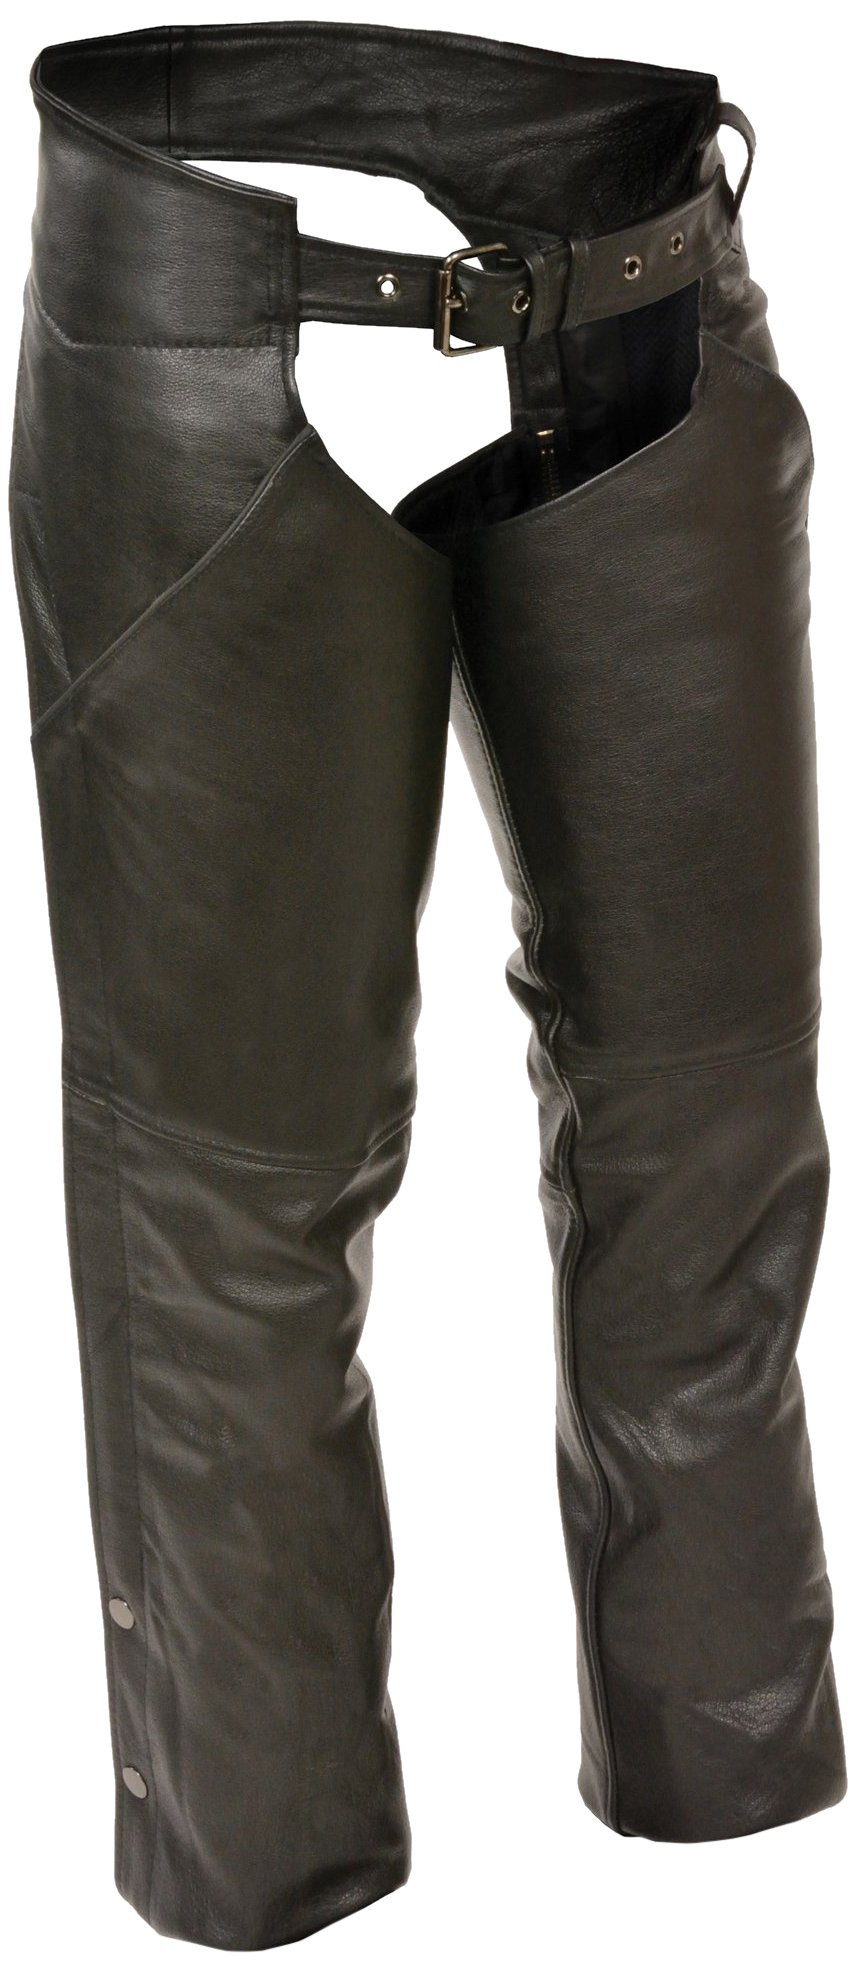 Milwaukee Women's Basic Chaps with Deep Pockets (Black, Small)